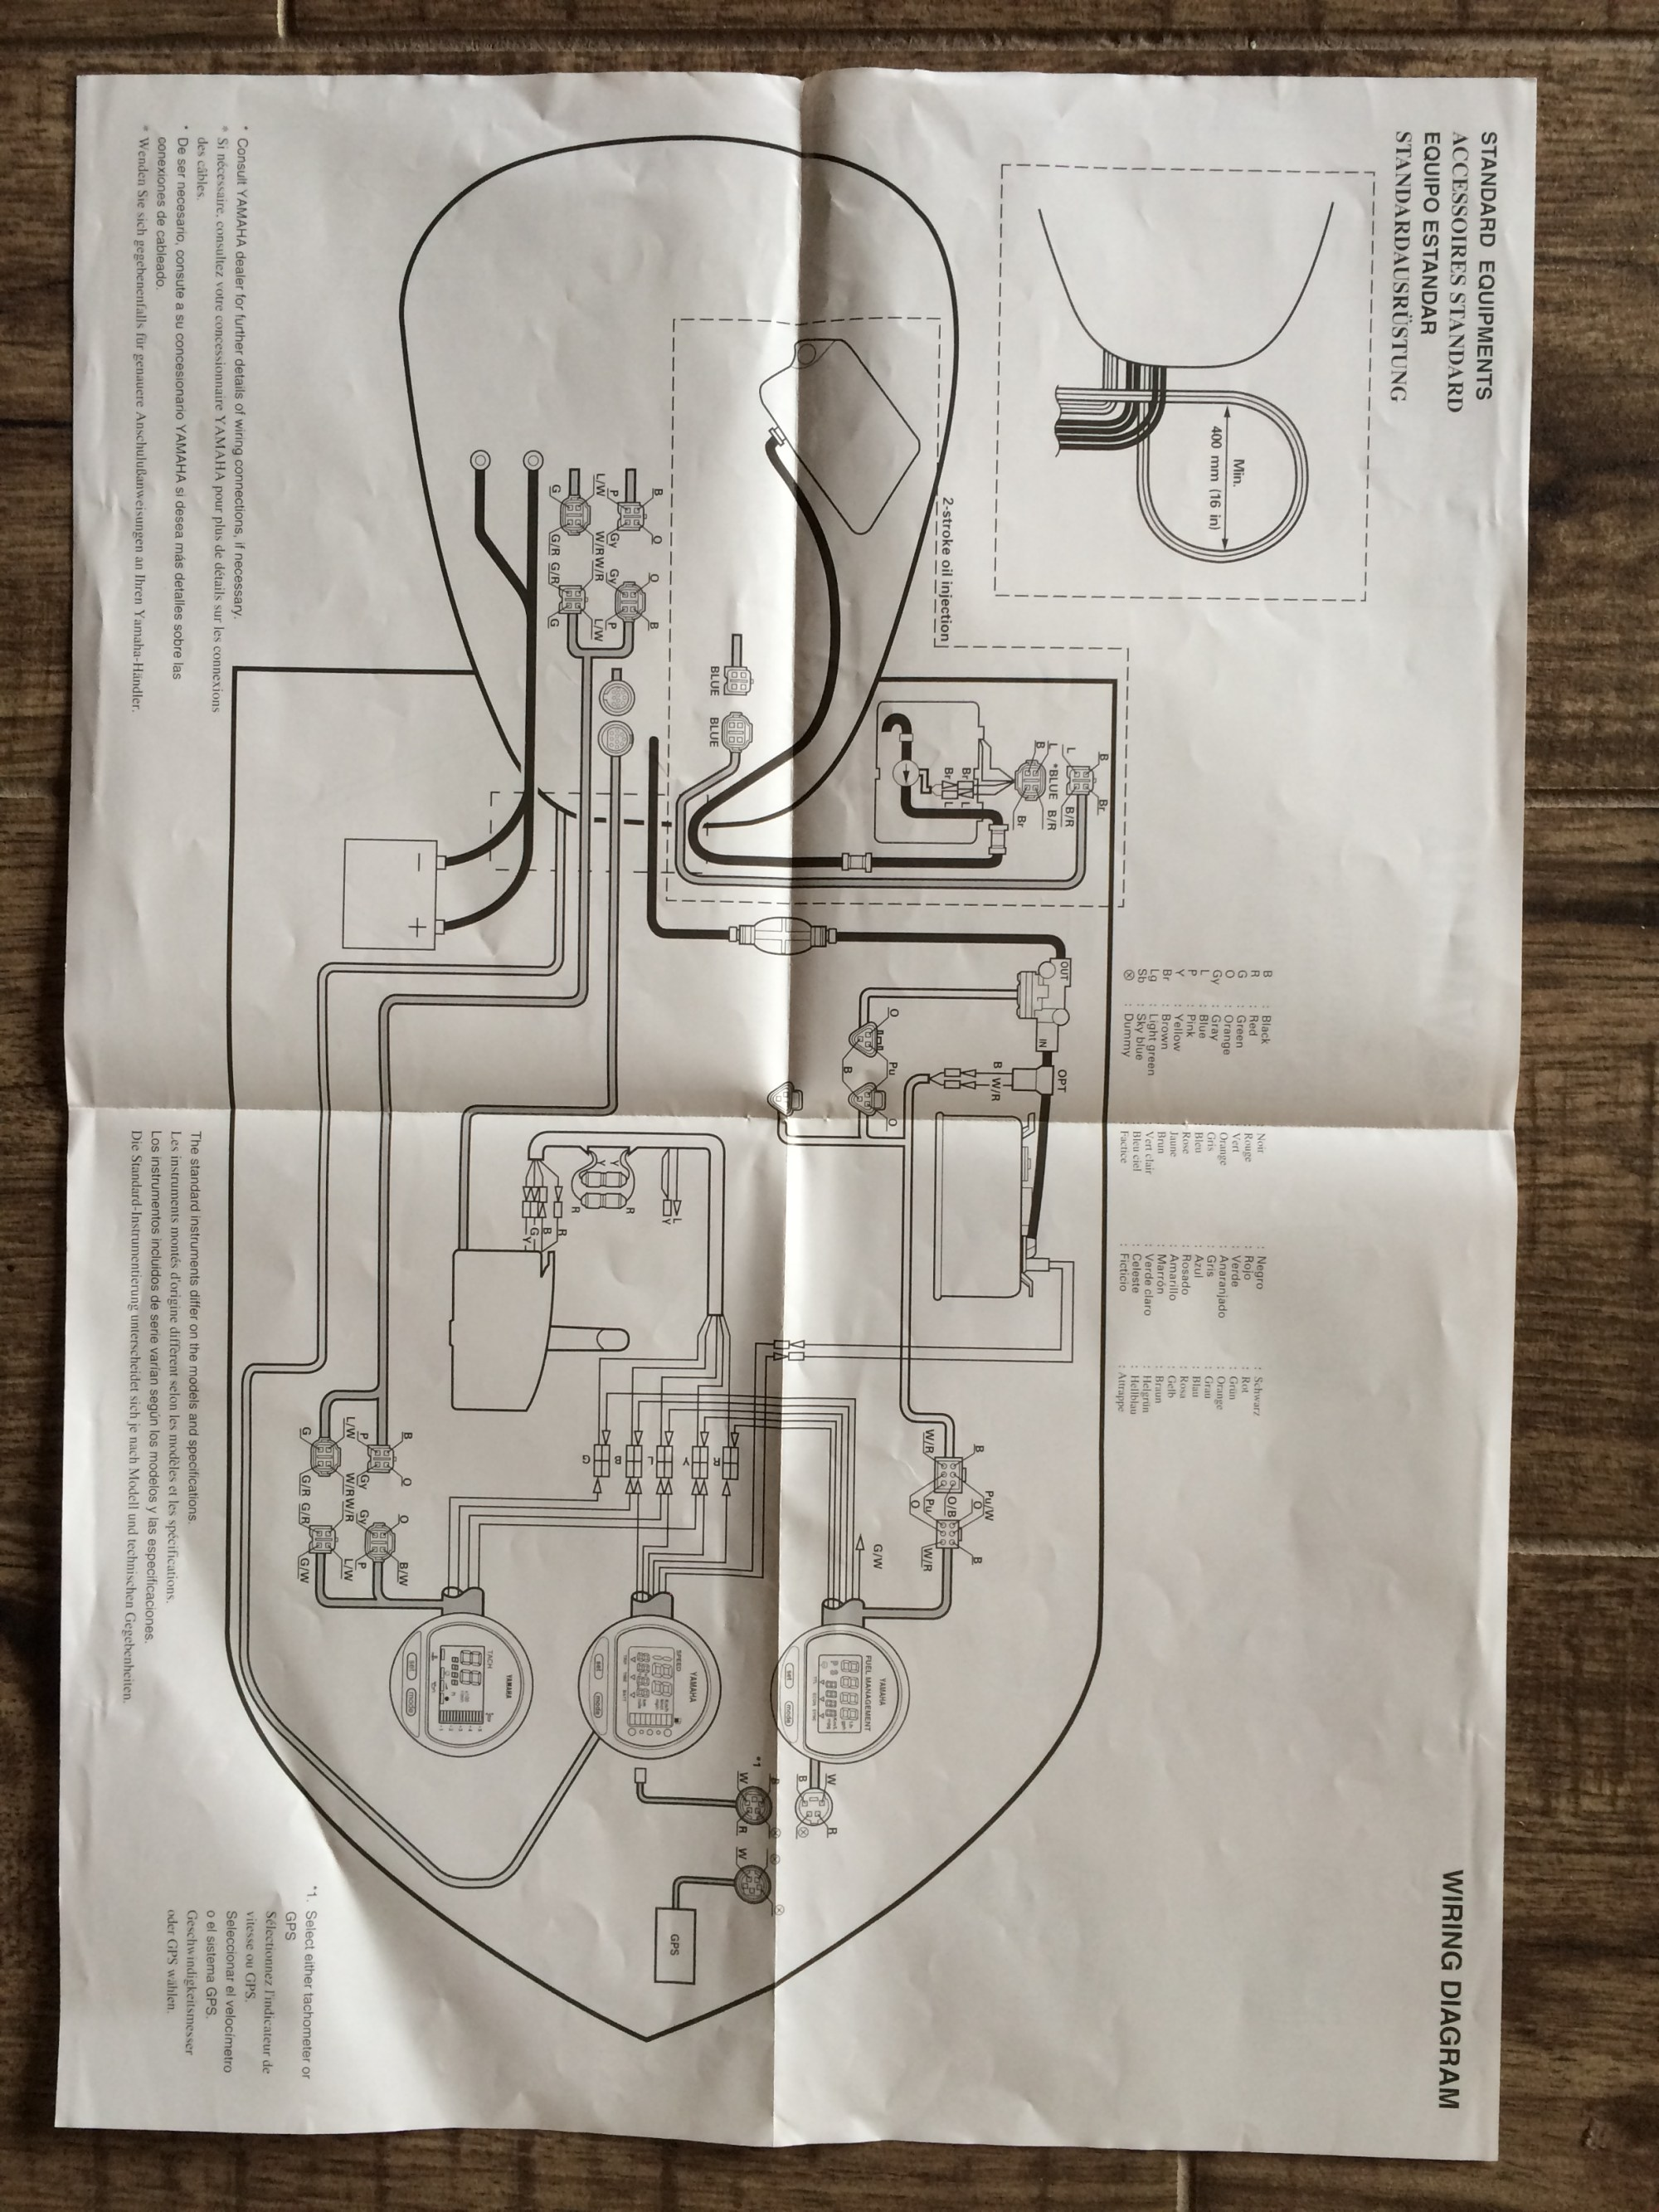 hight resolution of hurricane boat 201 wiring diagrams wiring diagrams system electrical wiring diagrams for a 2004 fd gs